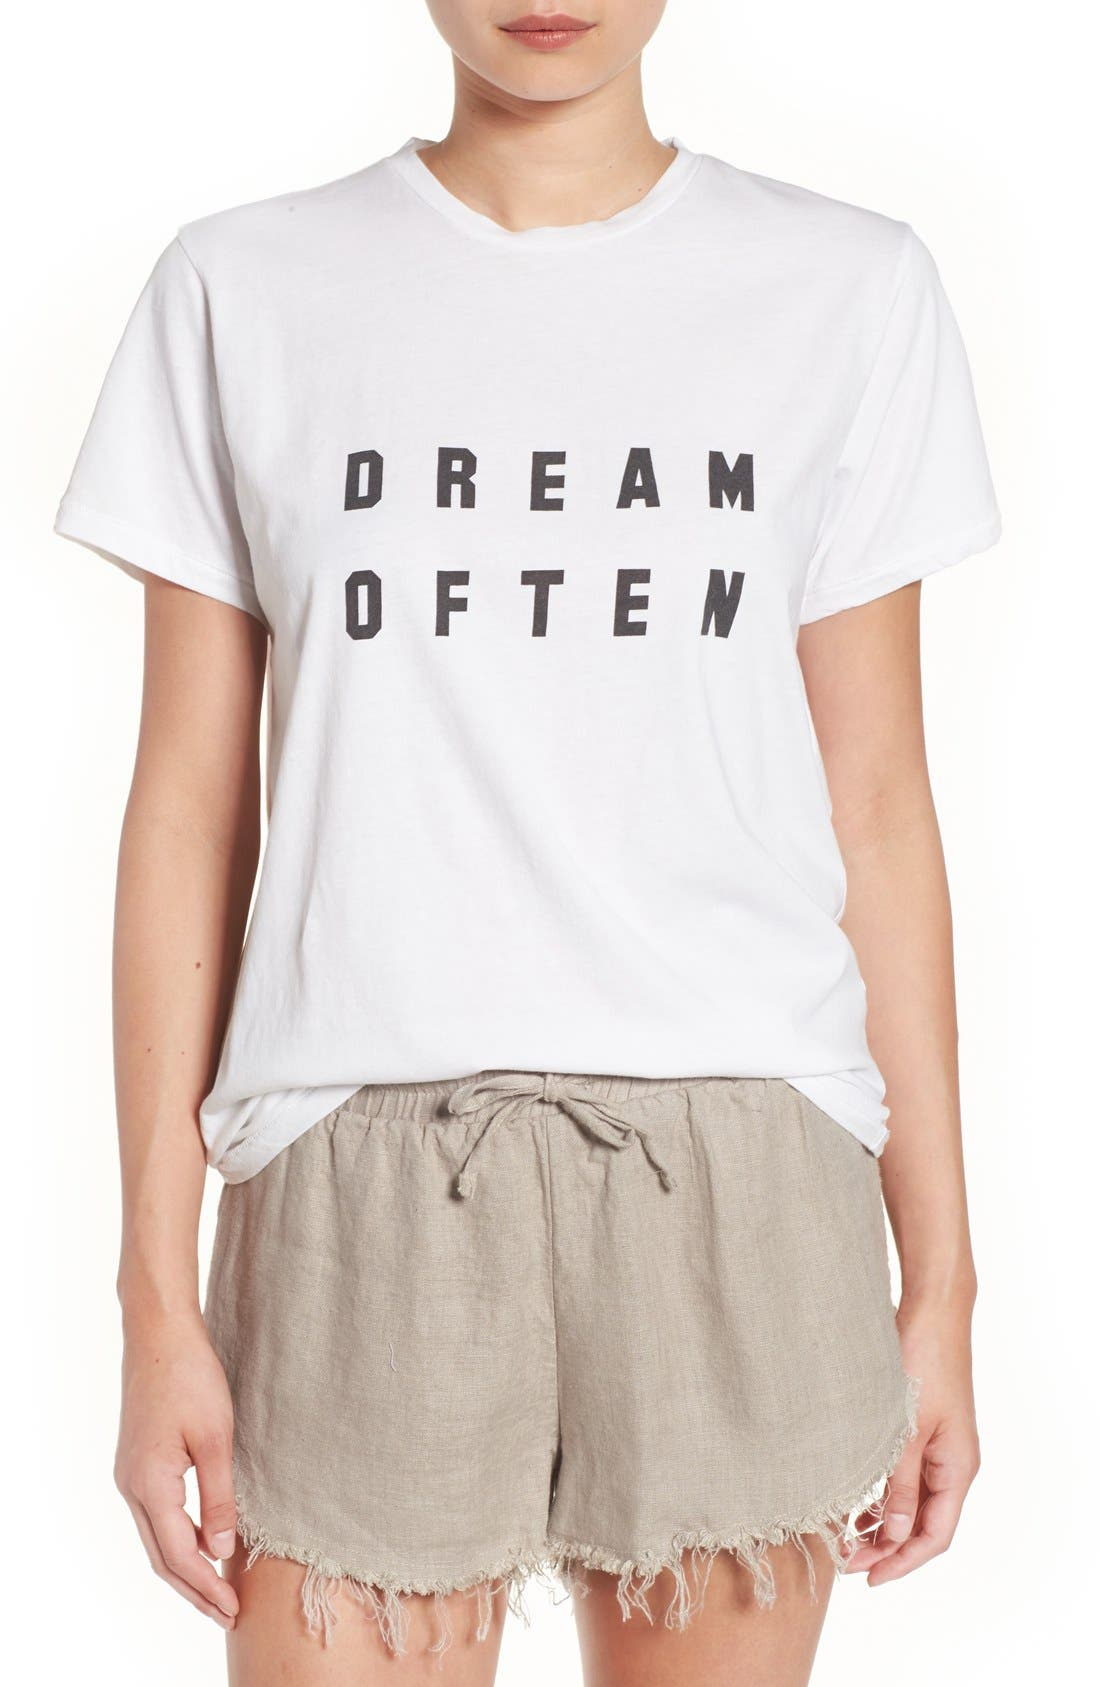 SINCERELY JULES 'Dream Often' Graphic Tee